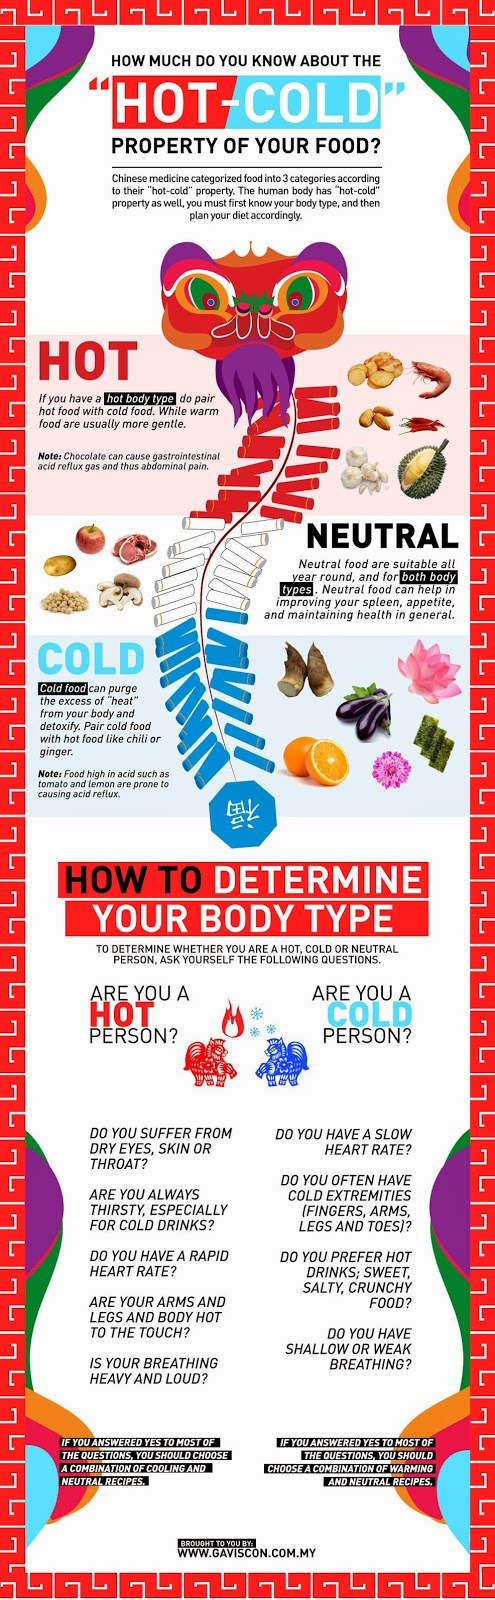 The HOT and COLD properties of food according to Chinese medicine